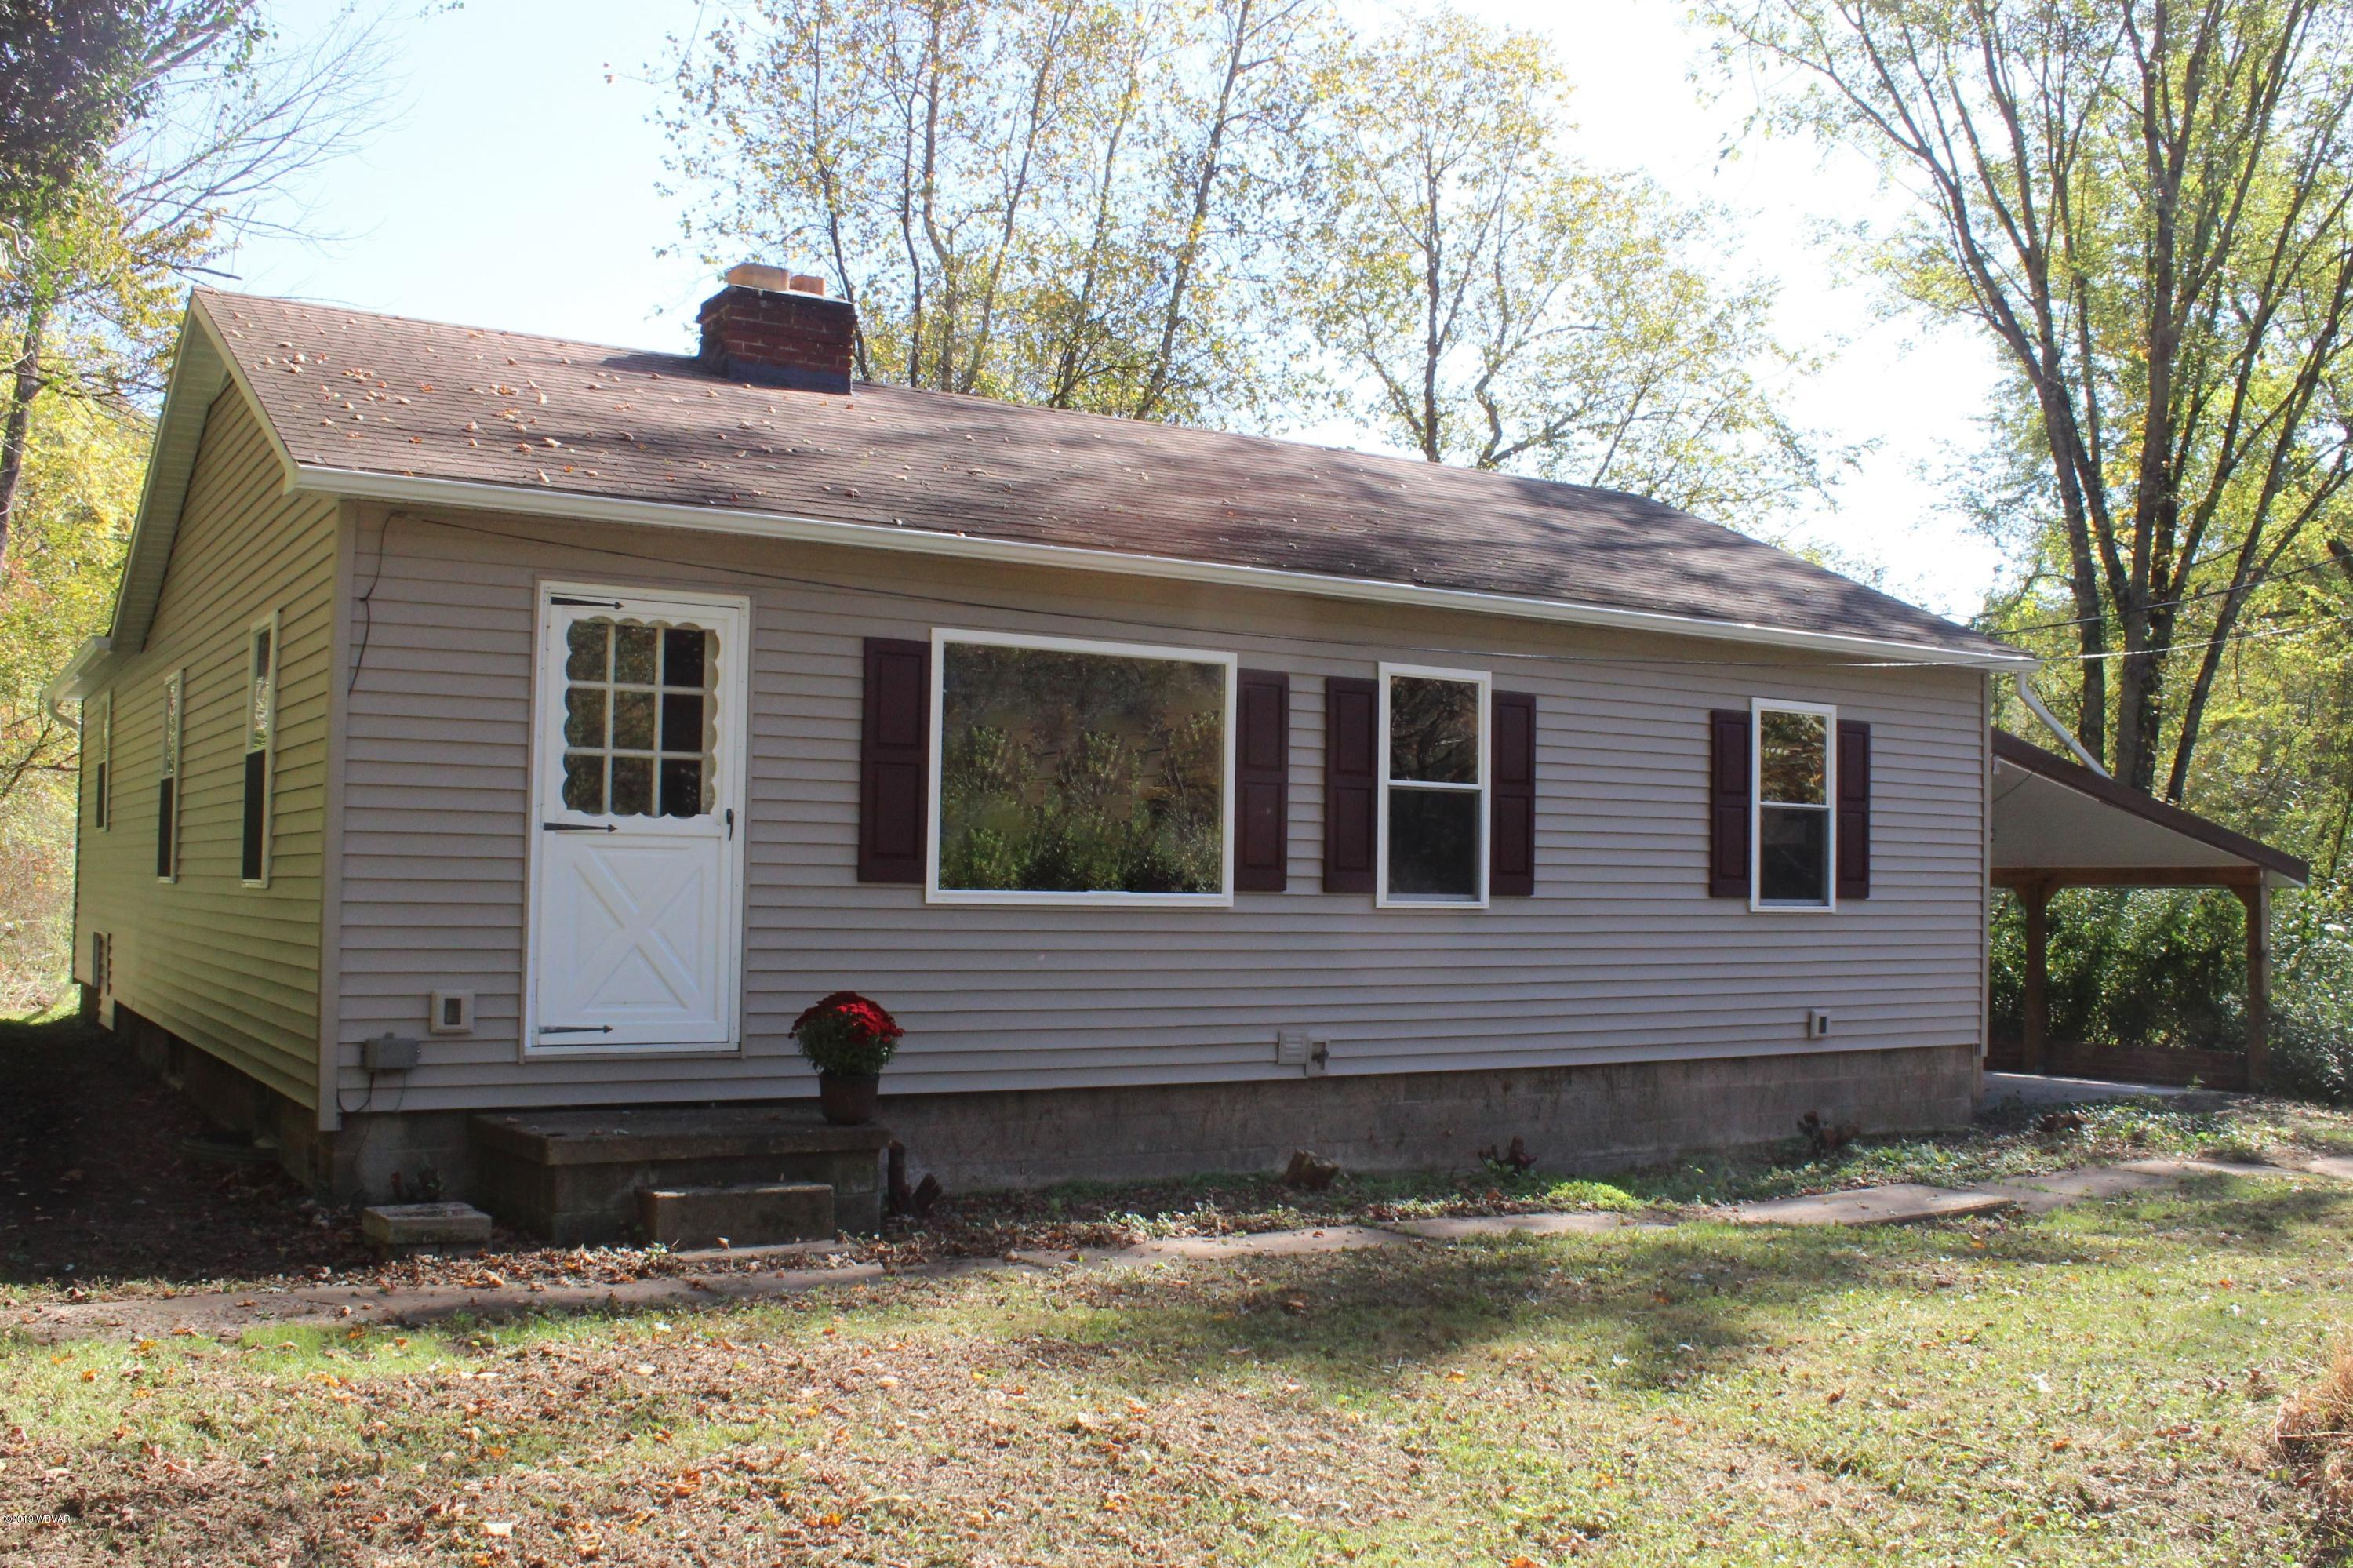 722 PA-864 HIGHWAY,Montoursville,PA 17754,3 Bedrooms Bedrooms,1 BathroomBathrooms,Residential,PA-864,WB-88804